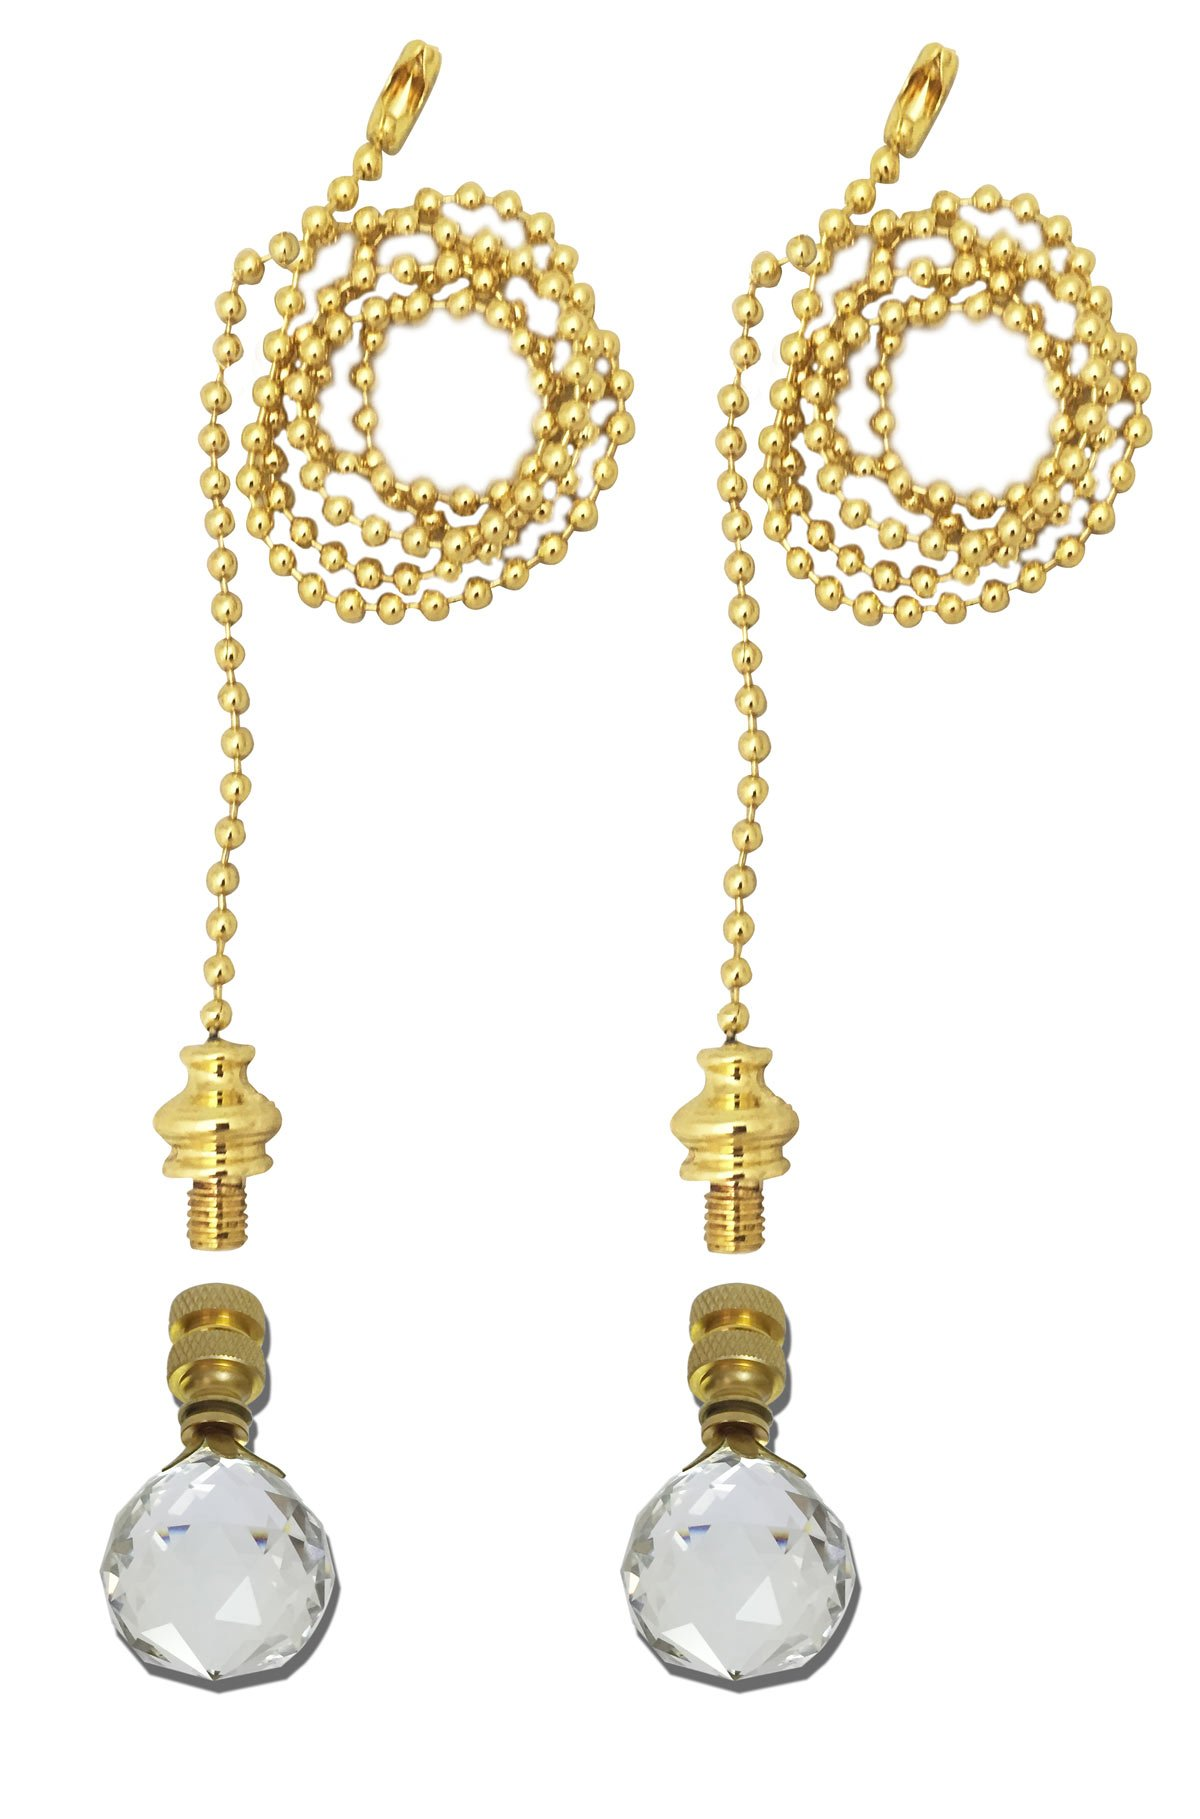 Royal Designs Fan Pull Chain with Large Faceted Diamond Cut Crystal Finial – Polished Brass – Set of 2